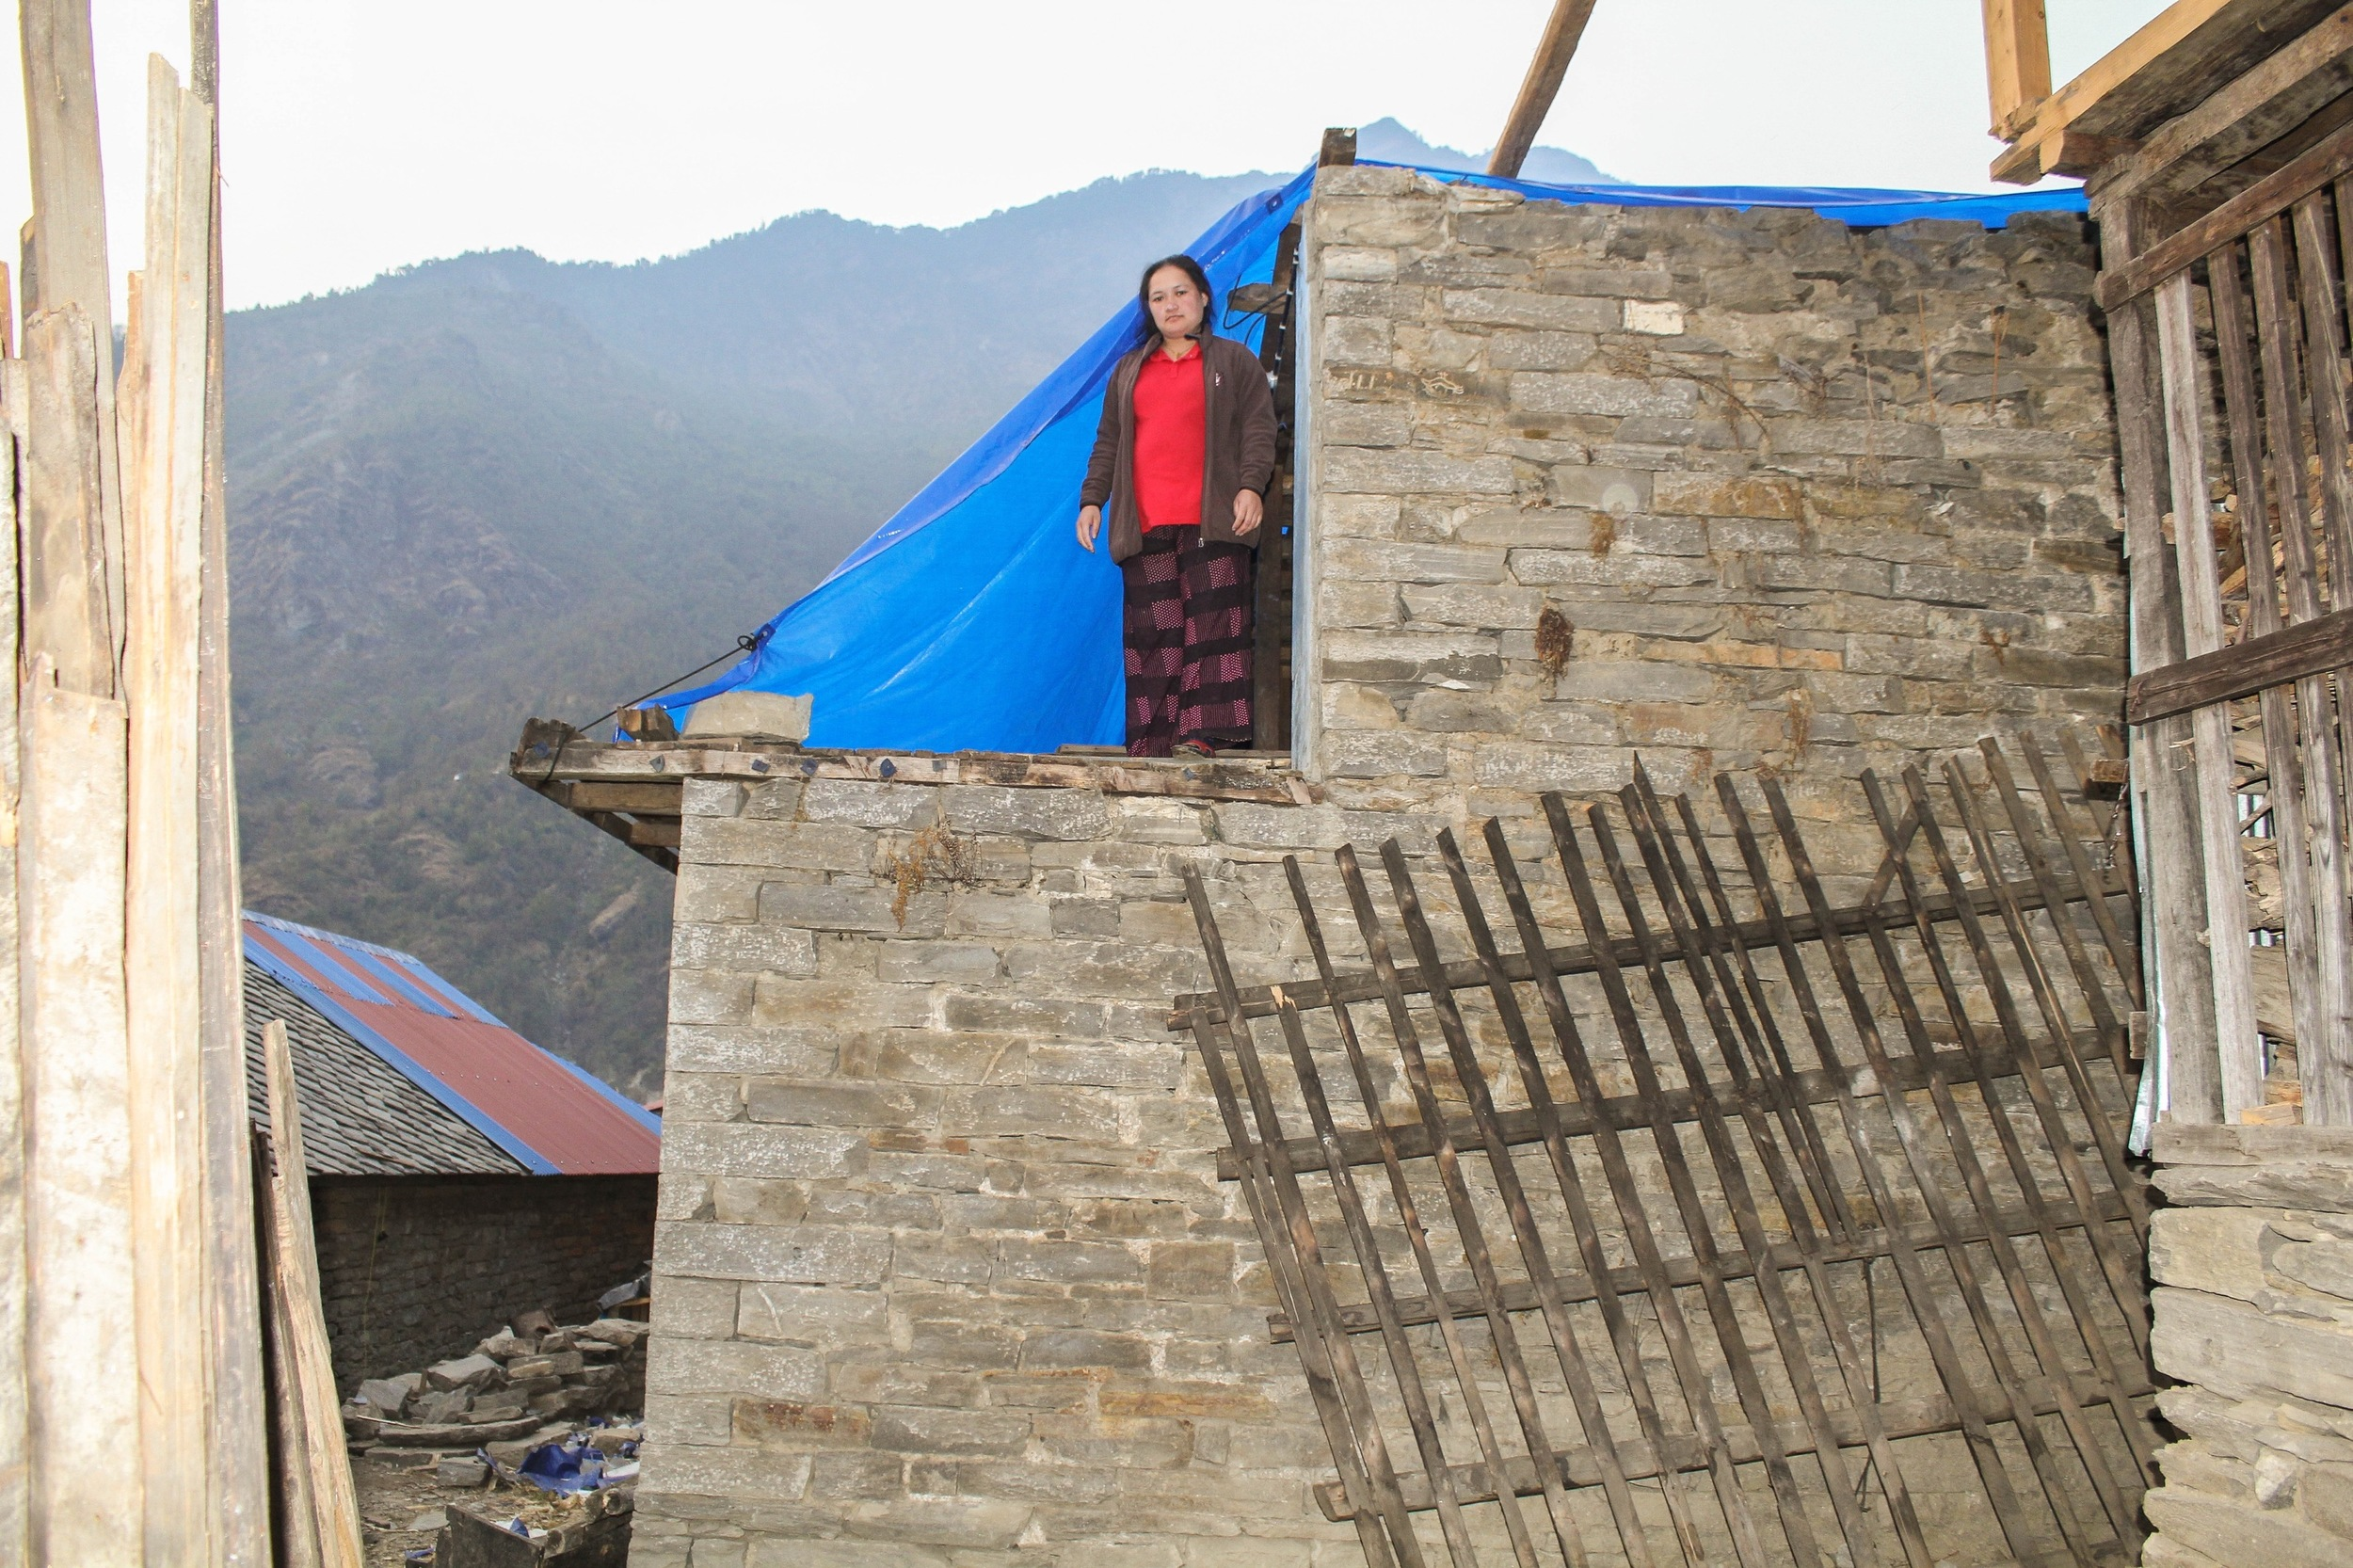 In the village of Tawal, also in Dhading district, many are still living in temporary shelters, or have made use of tarpaulin to cover exposed parts of their homes - Photo courtesy of Ramesh Man Maharjan.